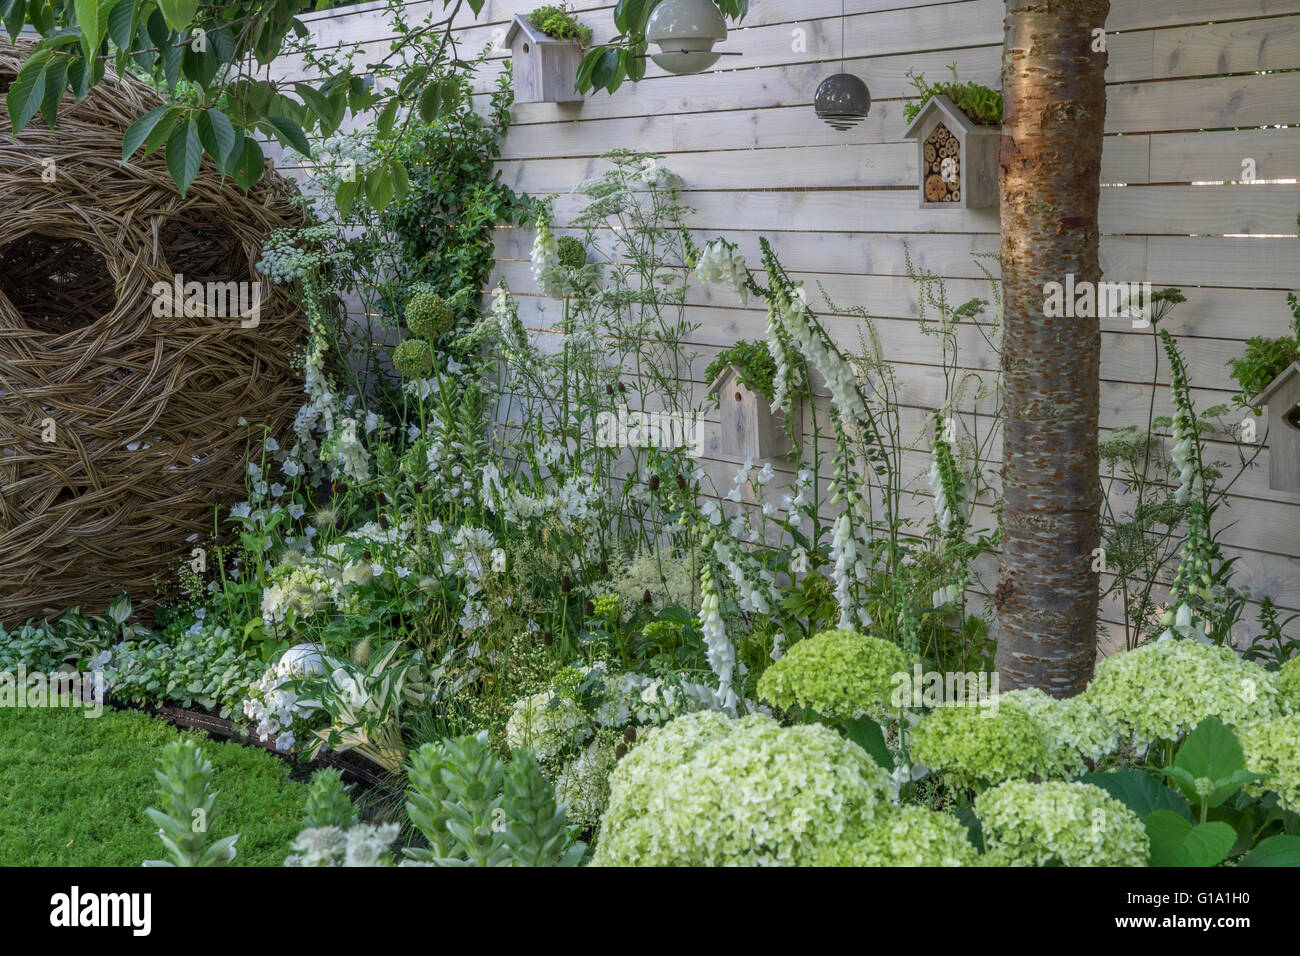 A garden based on White with a white fence and planting.  RHS Hampton Court Show Gardens 2015 - Living Landscapes: - Stock Image